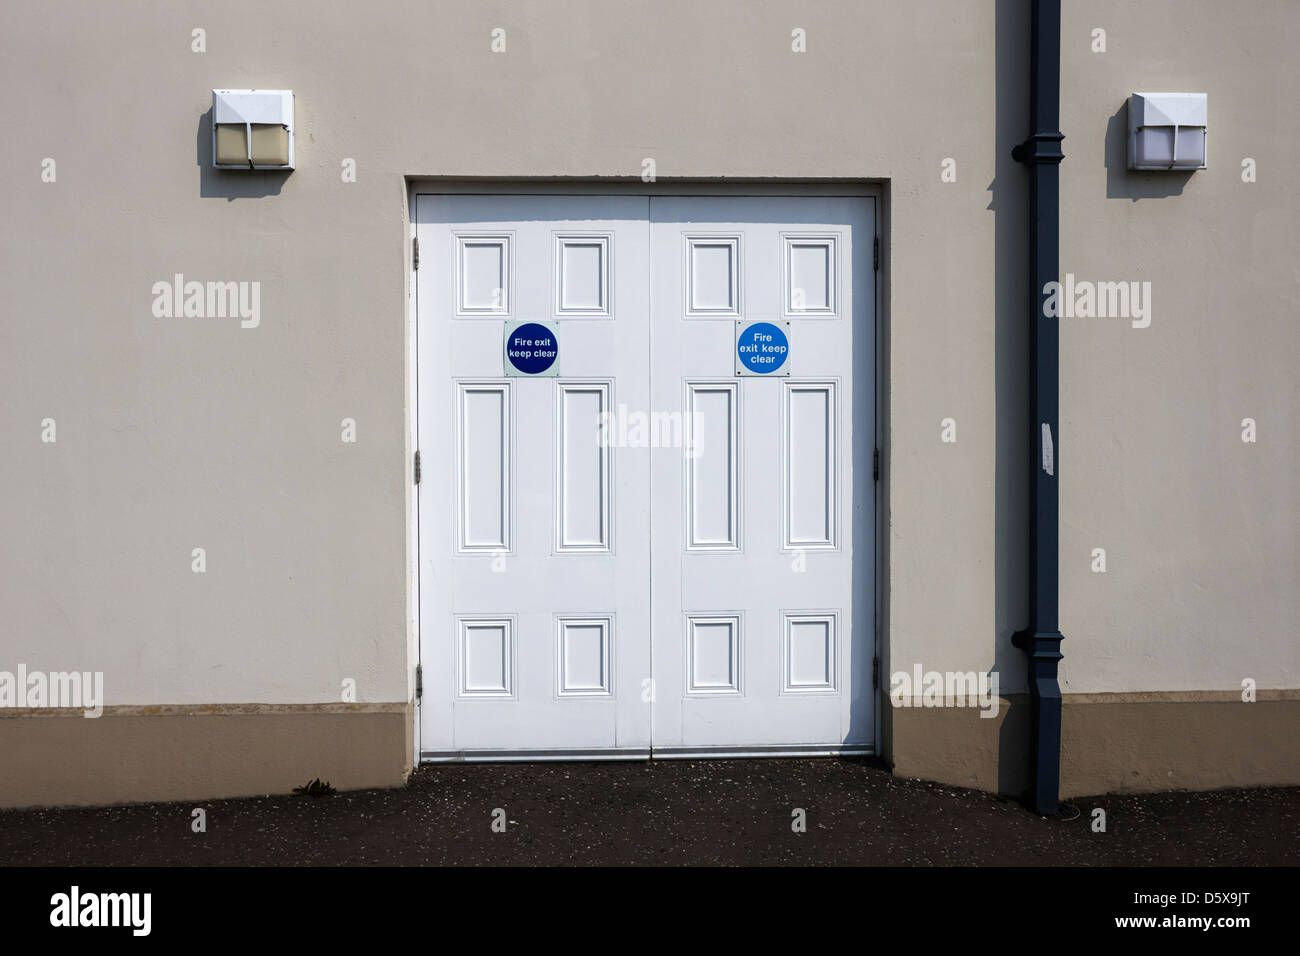 fire exit keep clear emergency doors in a public access building moira county down northern ireland uk - Stock Image